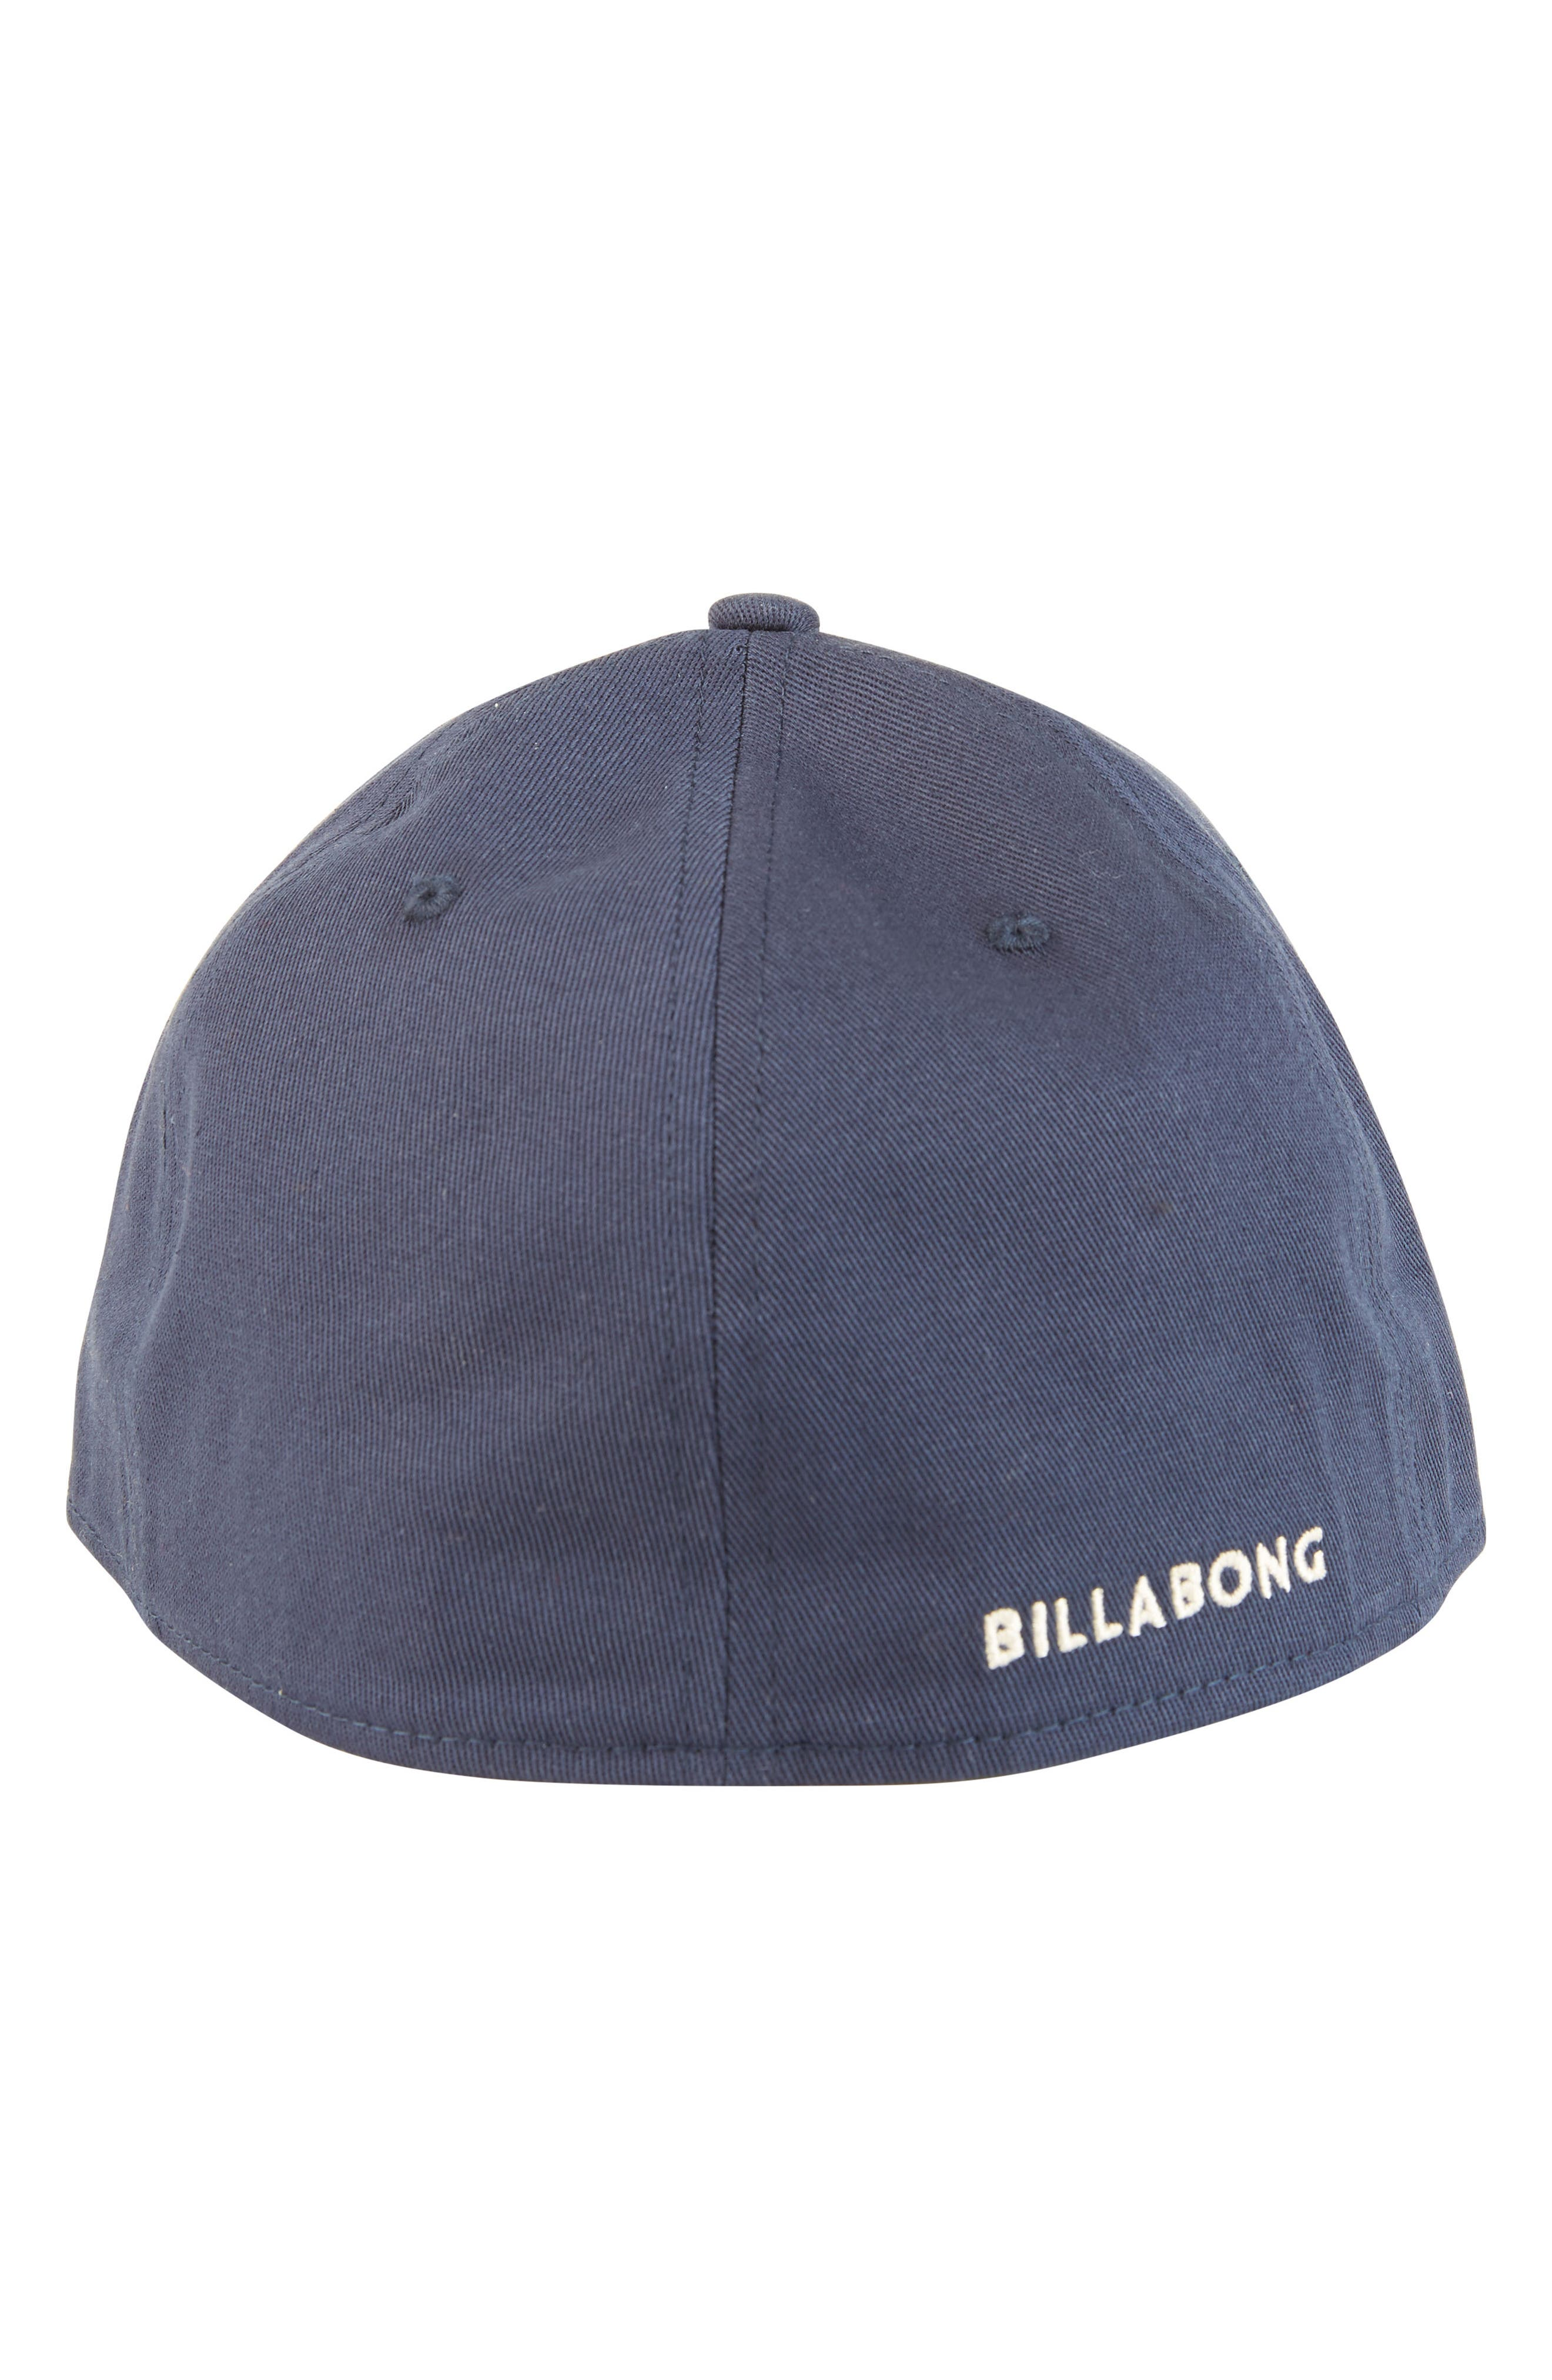 All Day Stretch Baseball Cap,                             Alternate thumbnail 3, color,                             NAVY